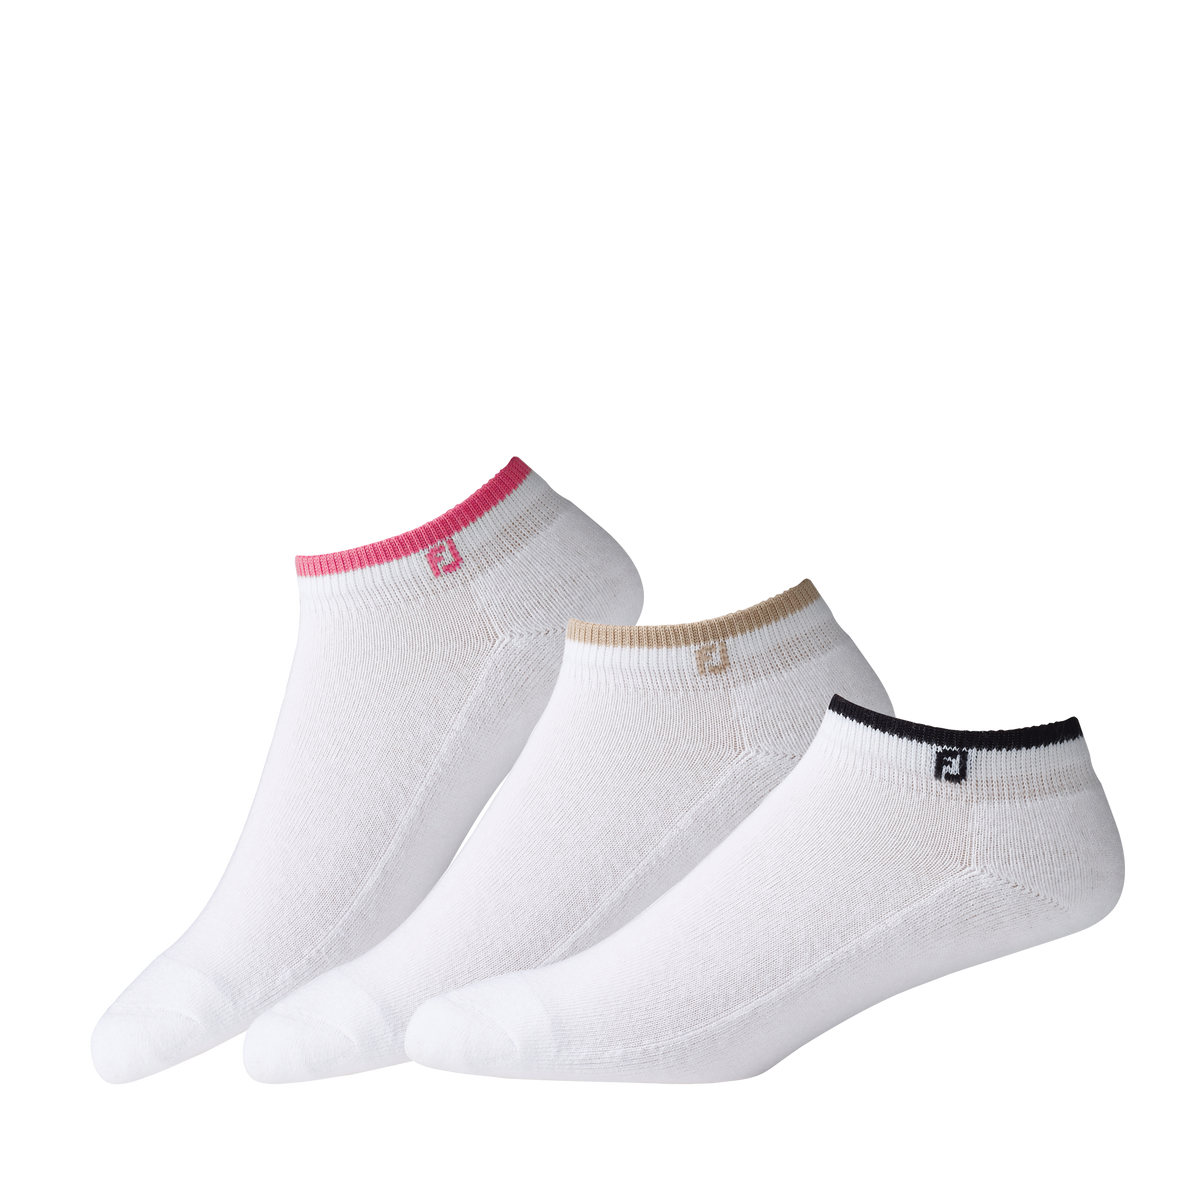 ComfortSof Sportlet 3 pair pack Women